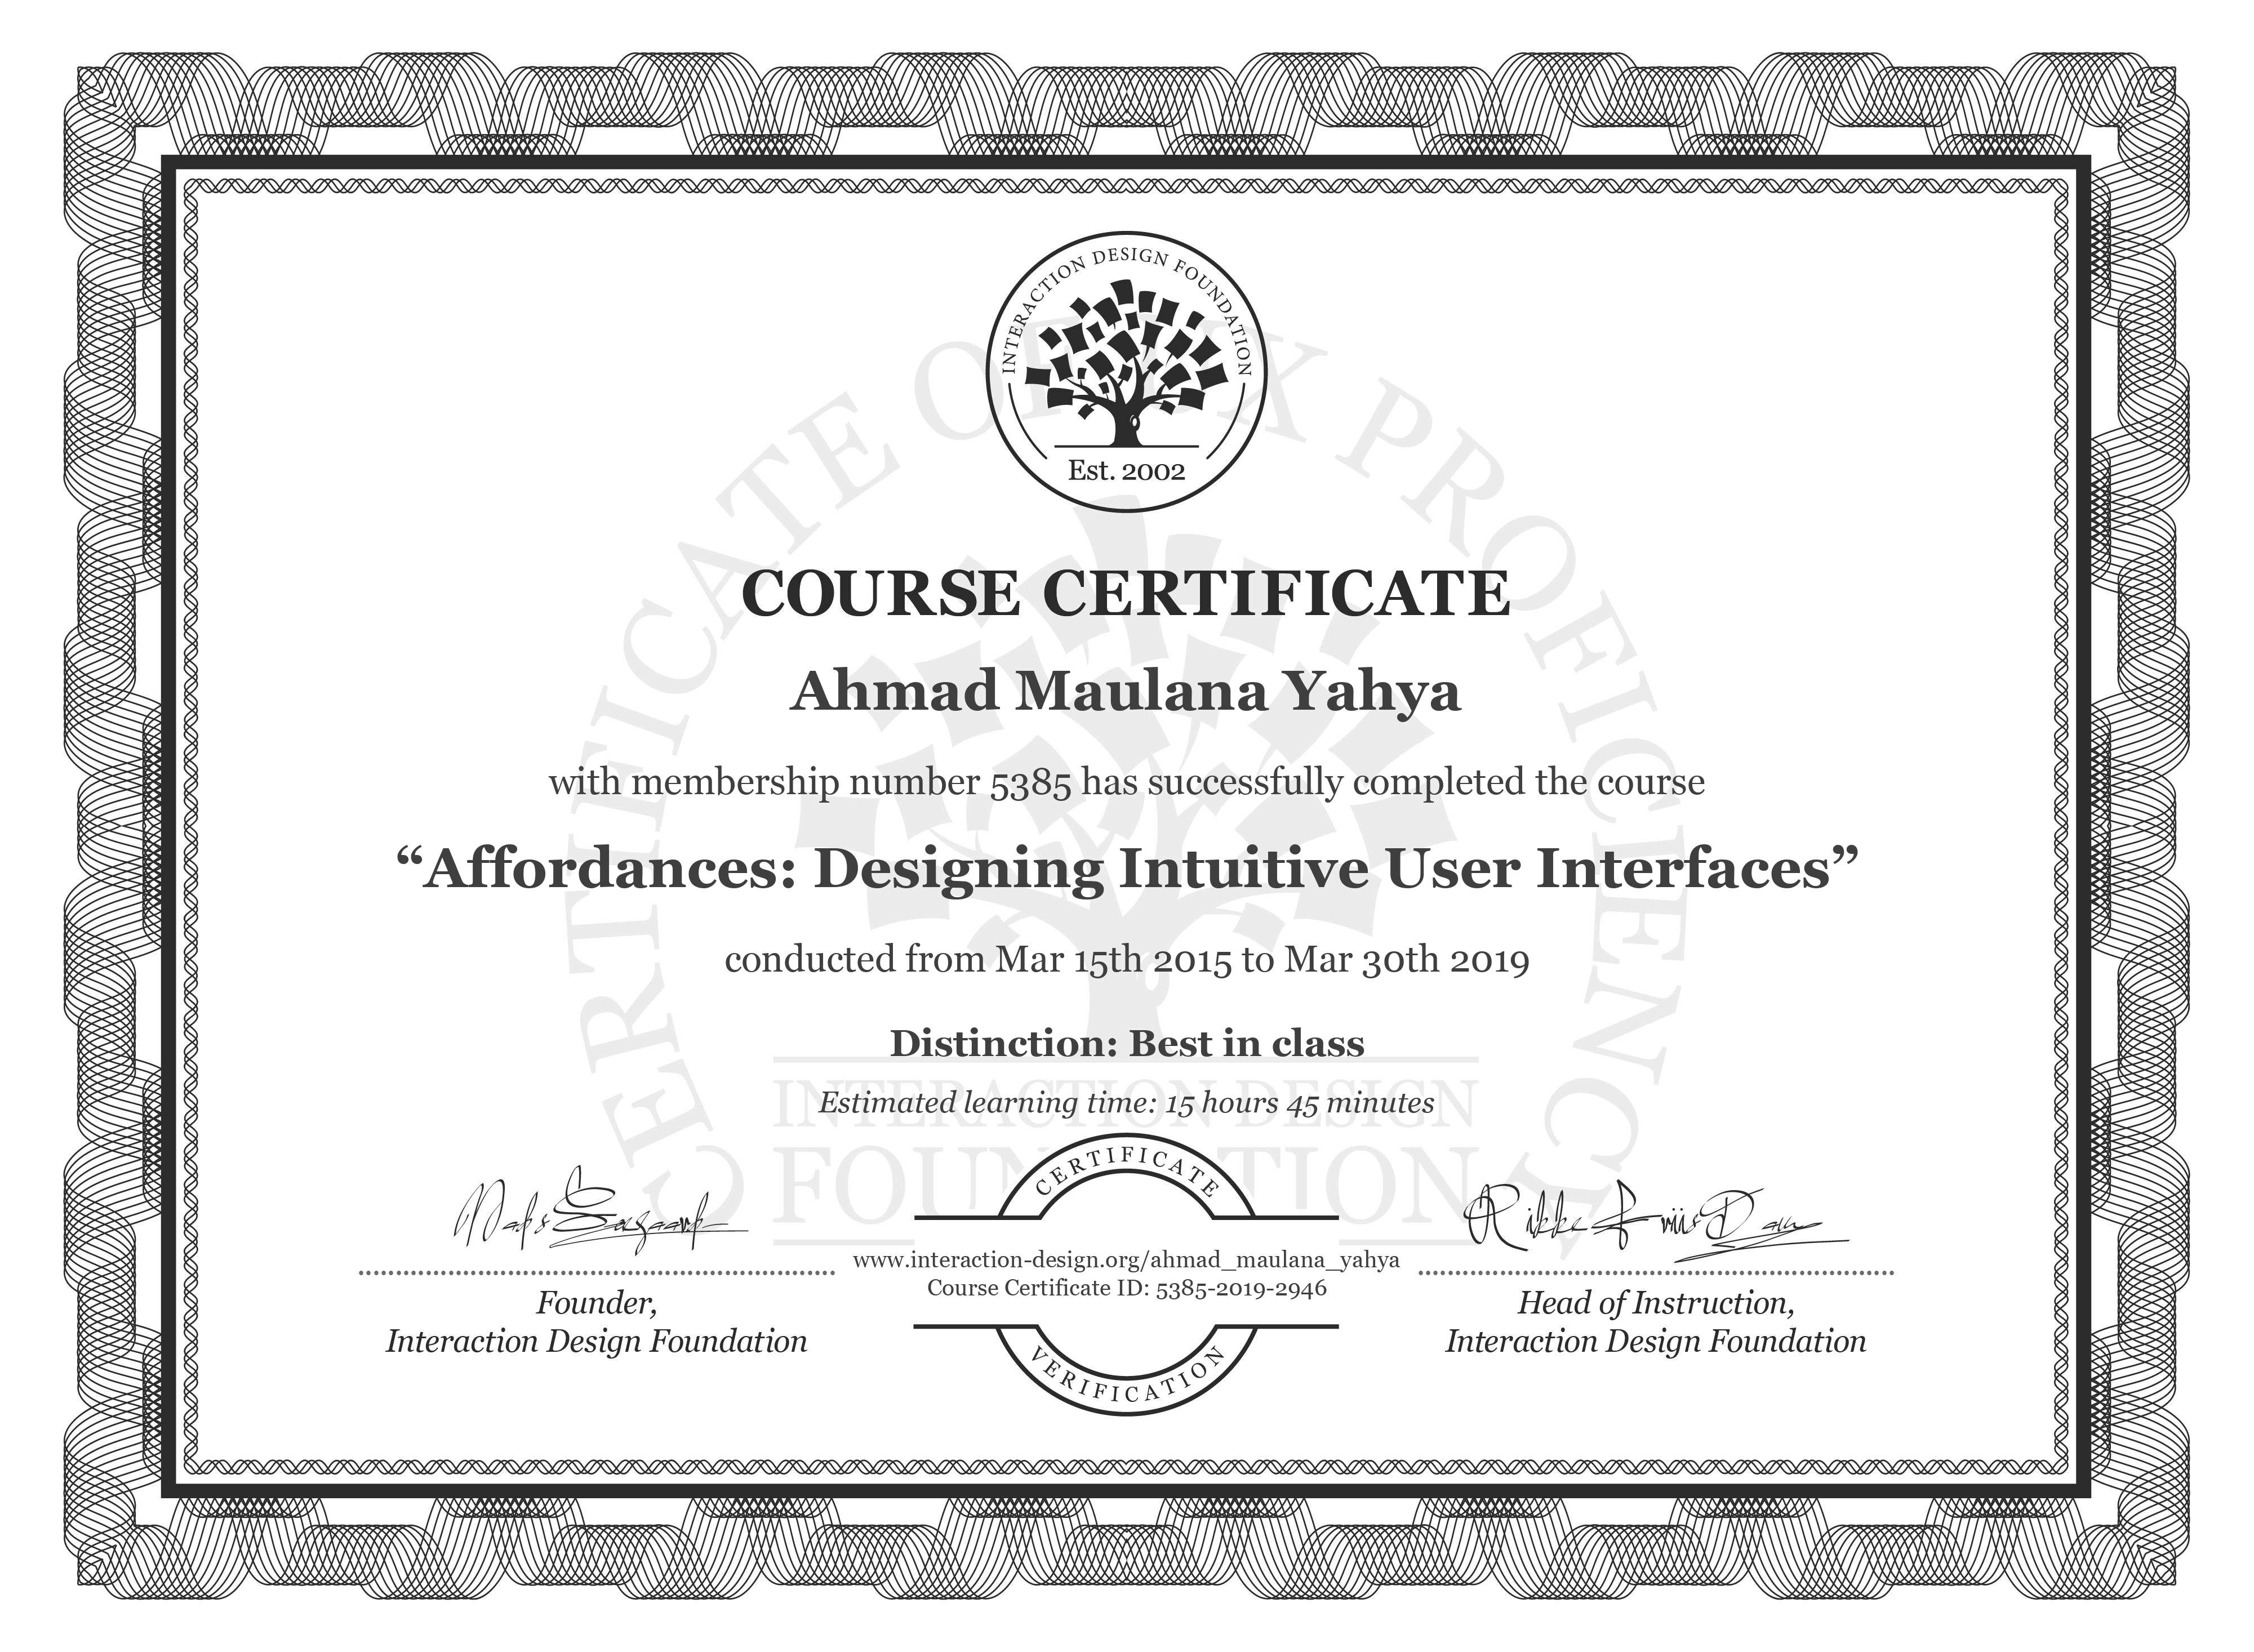 Ahmad Maulana Yahya's Course Certificate: Affordances: Designing Intuitive User Interfaces